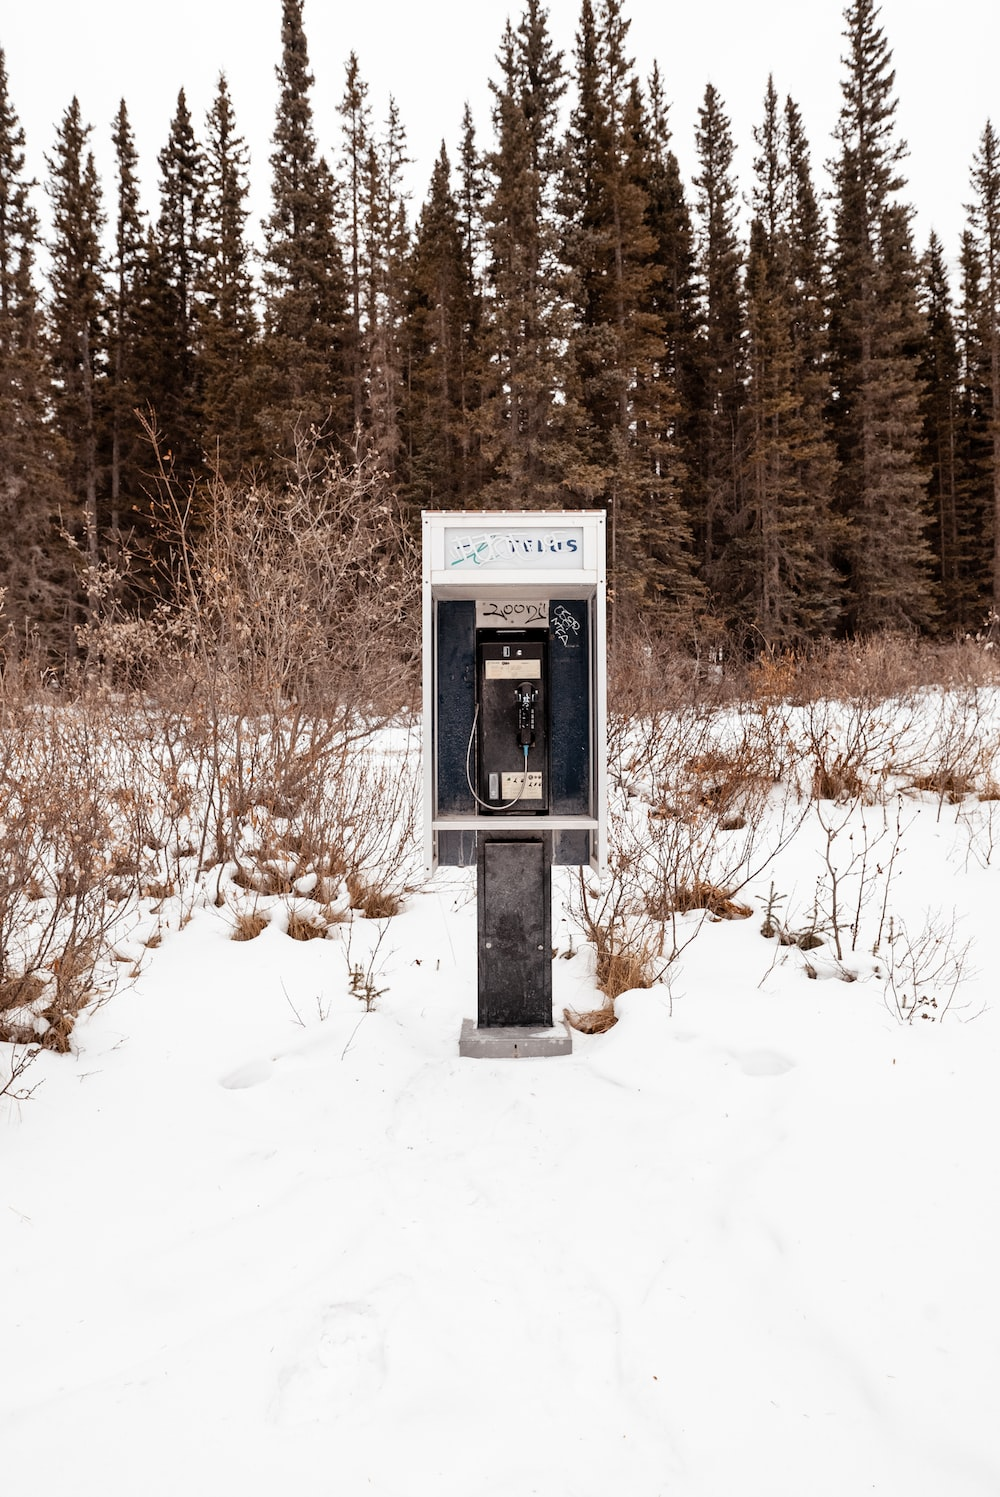 black and gray telephone booth on snow covered ground